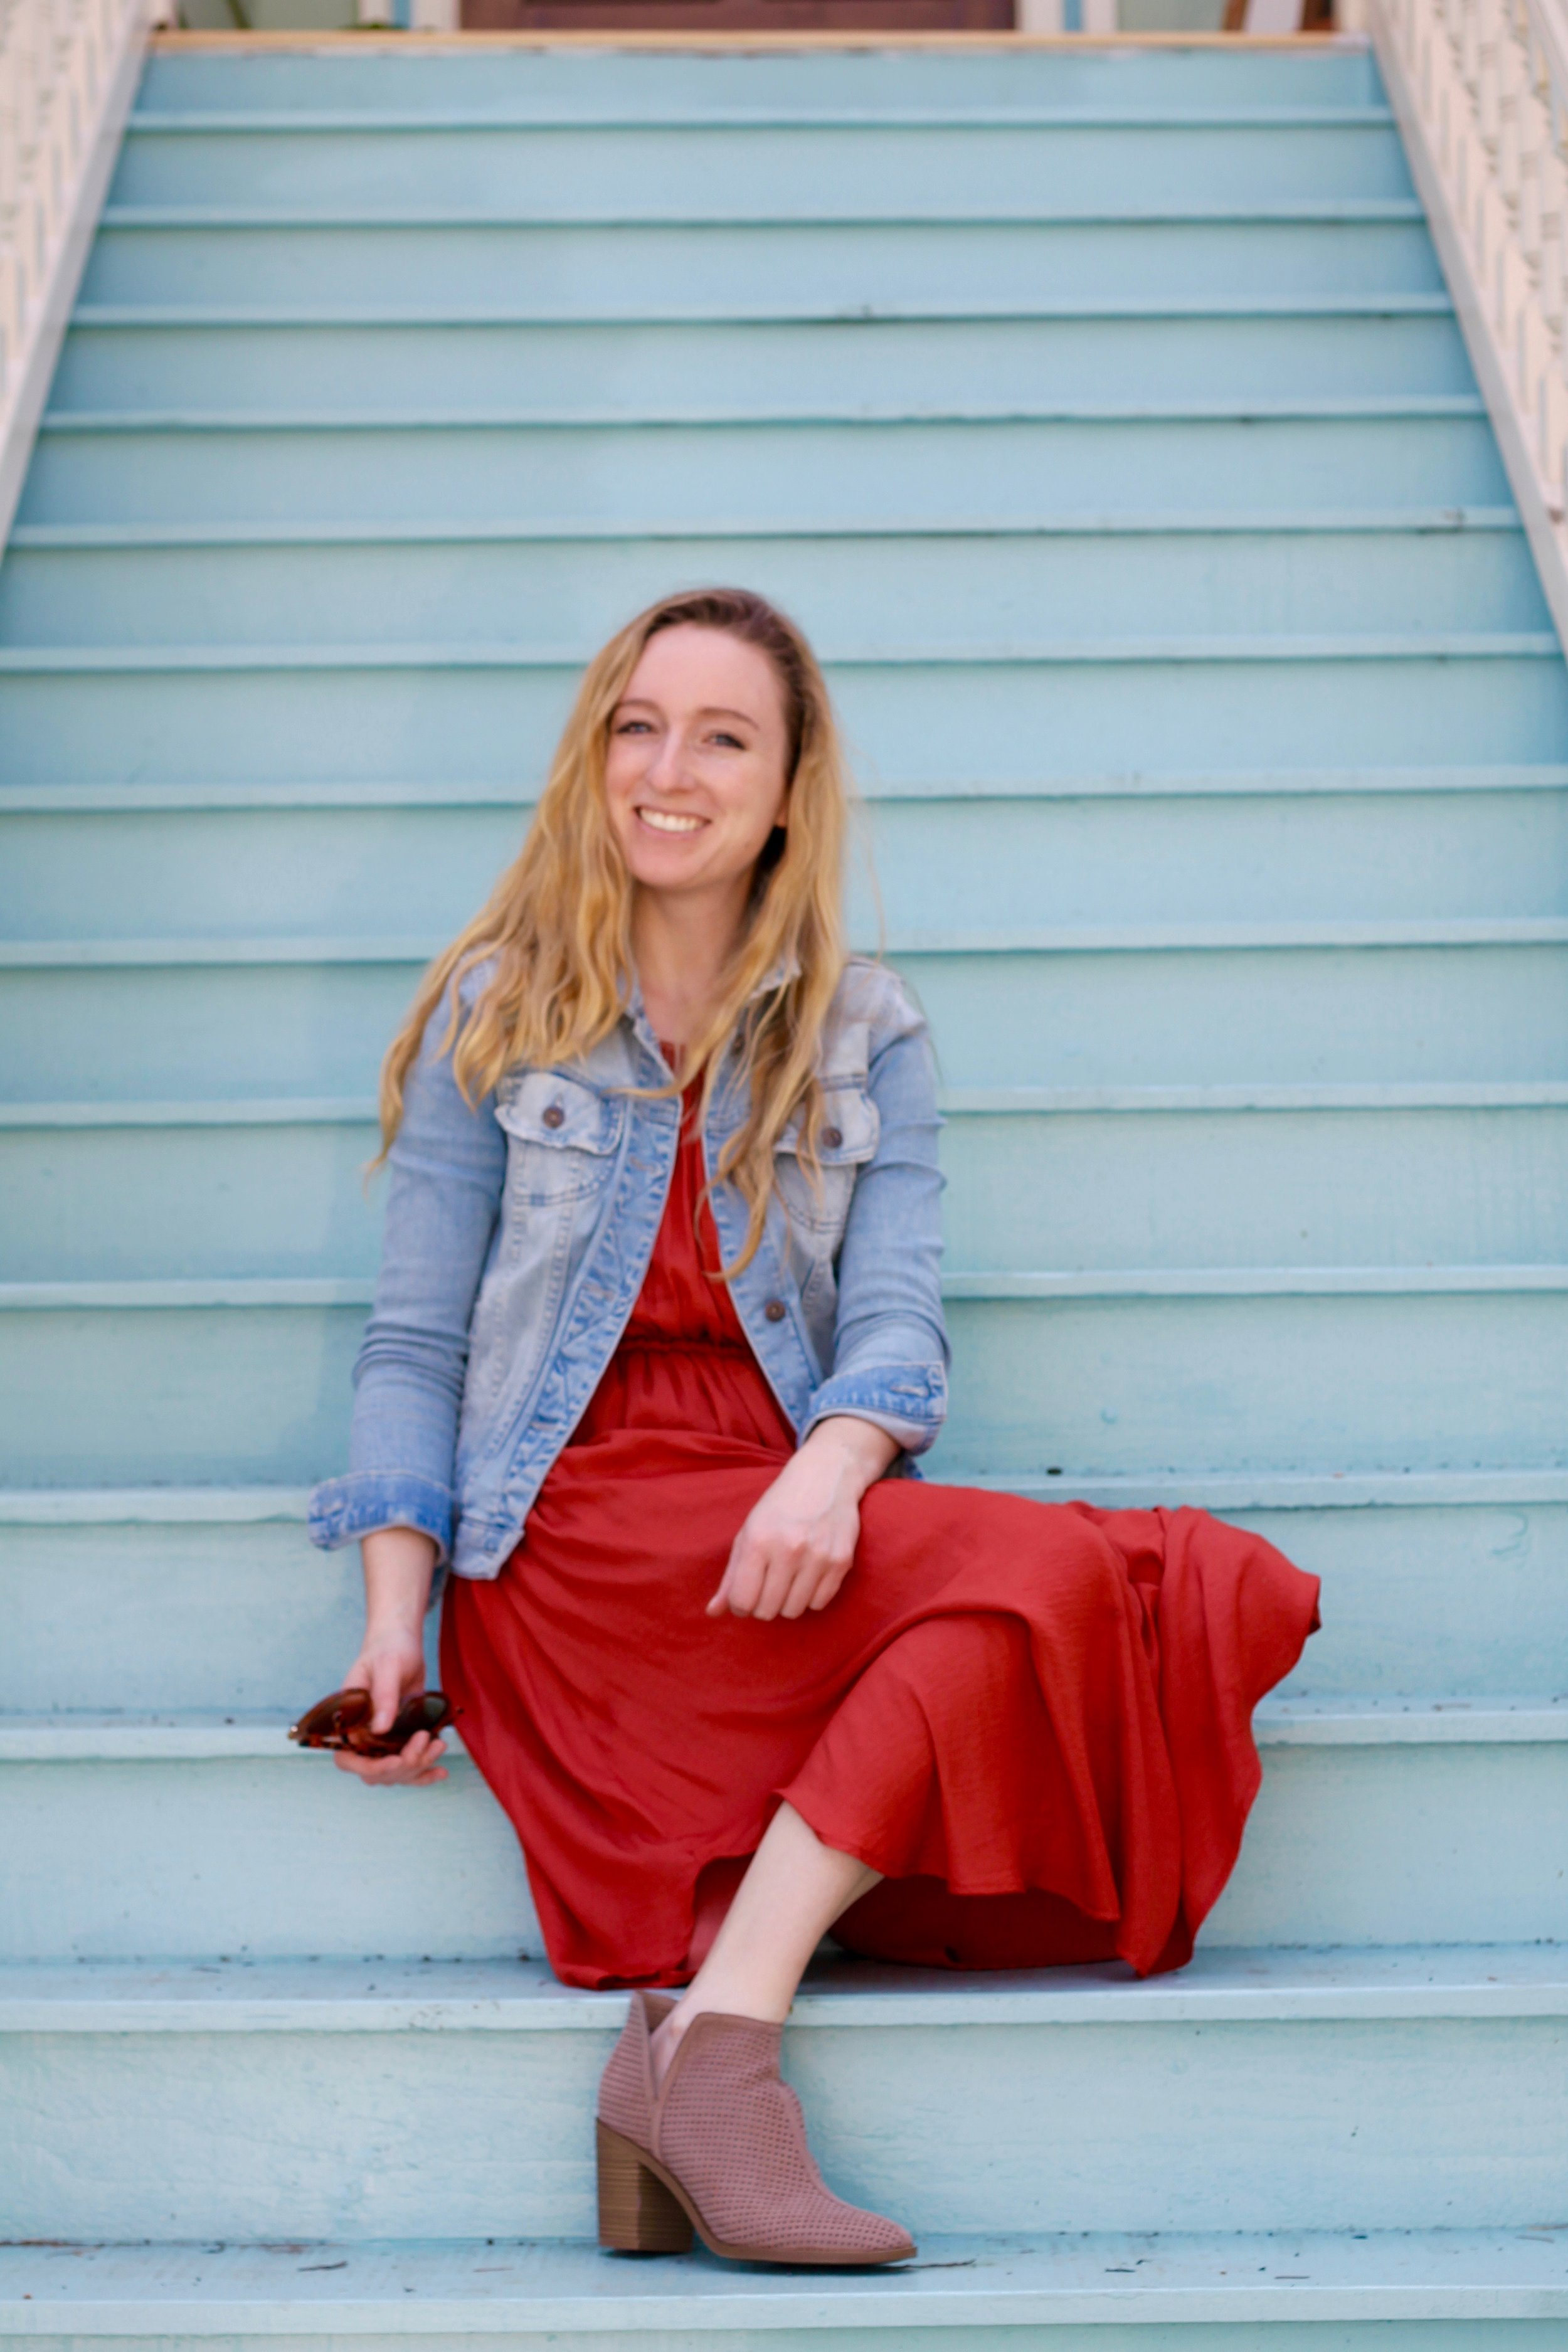 Hey there it's me, Allie! Here I am posing on one of the cute old Victorian steps in Midtown!